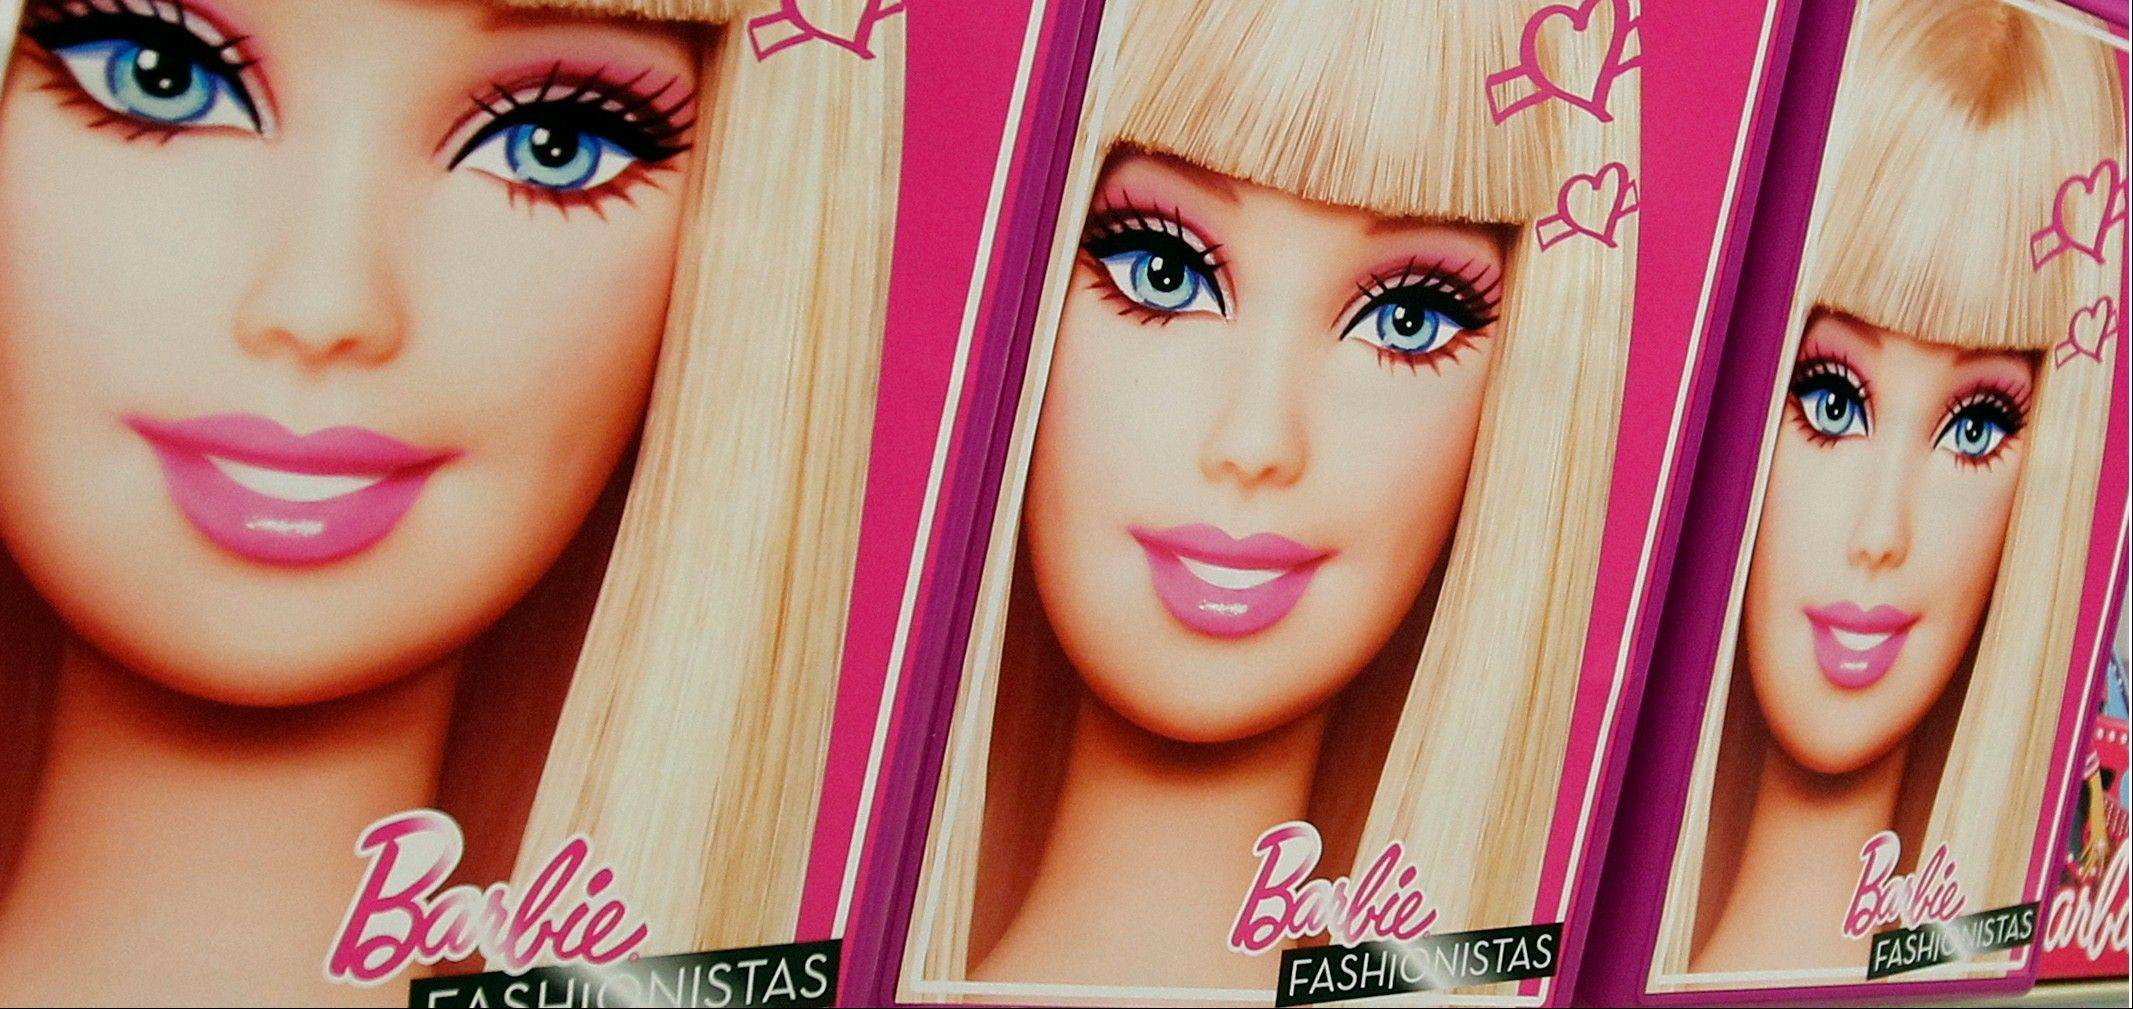 Demand for doll brands including Barbie, American Girl and Monster High, coupled with lower sales costs and advertising expenses, helped Mattel�s net income rise 20 percent in the second quarter.